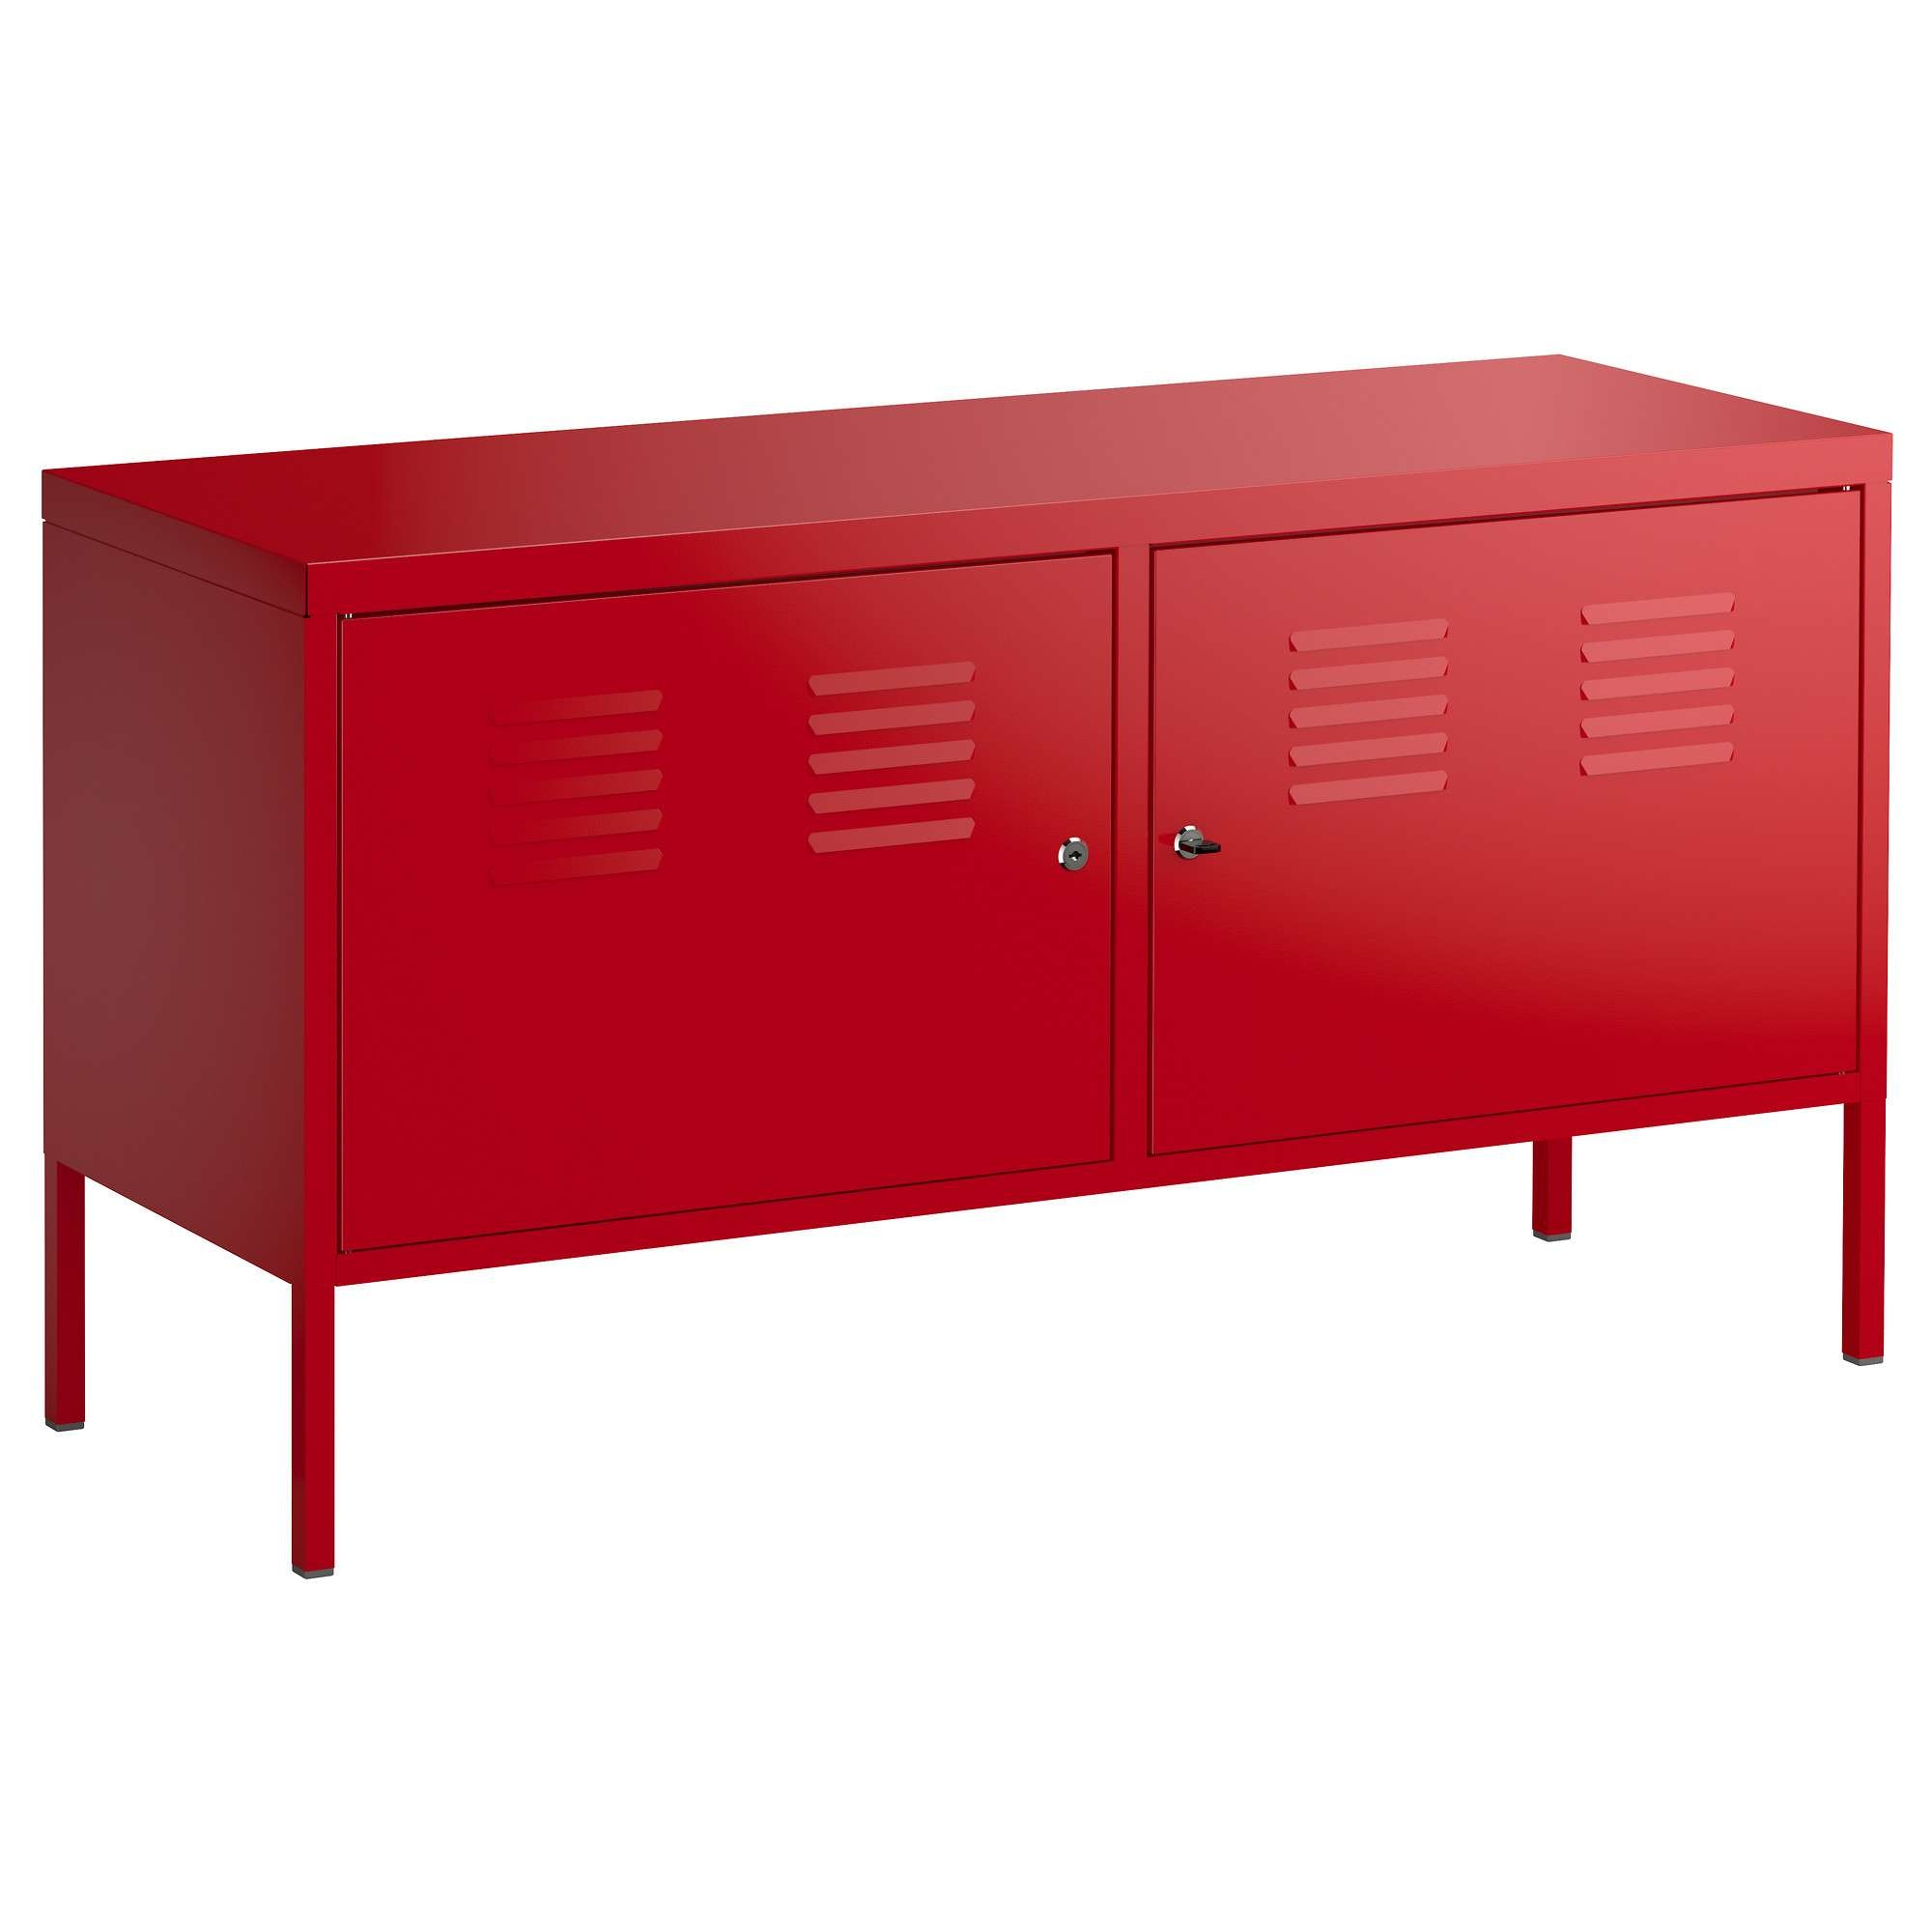 Ikea Ps Cabinet – Red – Ikea For 7 Foot Sideboards (View 6 of 20)